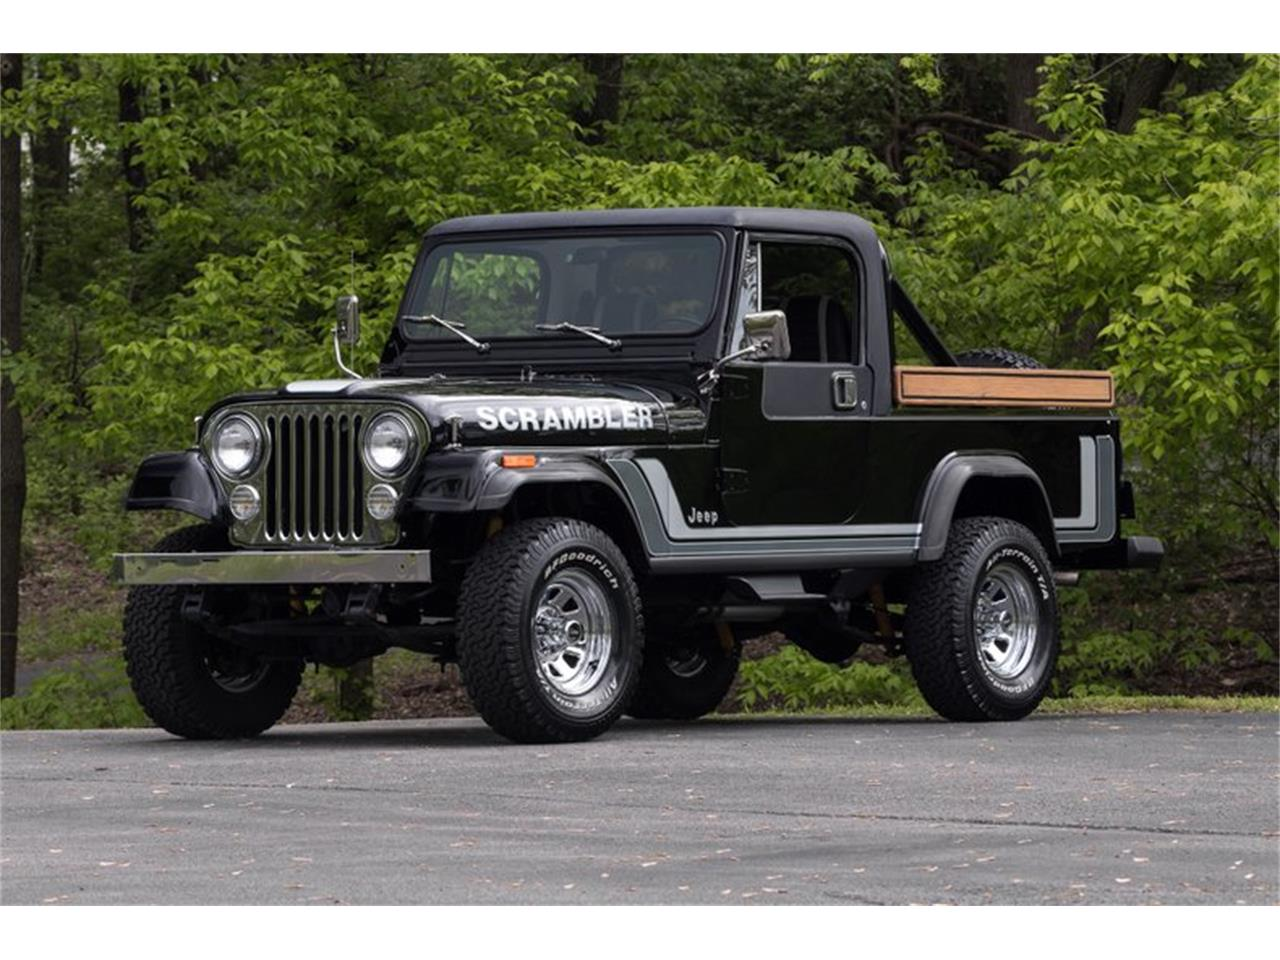 Large Picture of 1982 Jeep CJ8 Scrambler located in St. Charles Missouri - $34,995.00 Offered by Fast Lane Classic Cars Inc. - Q11Z